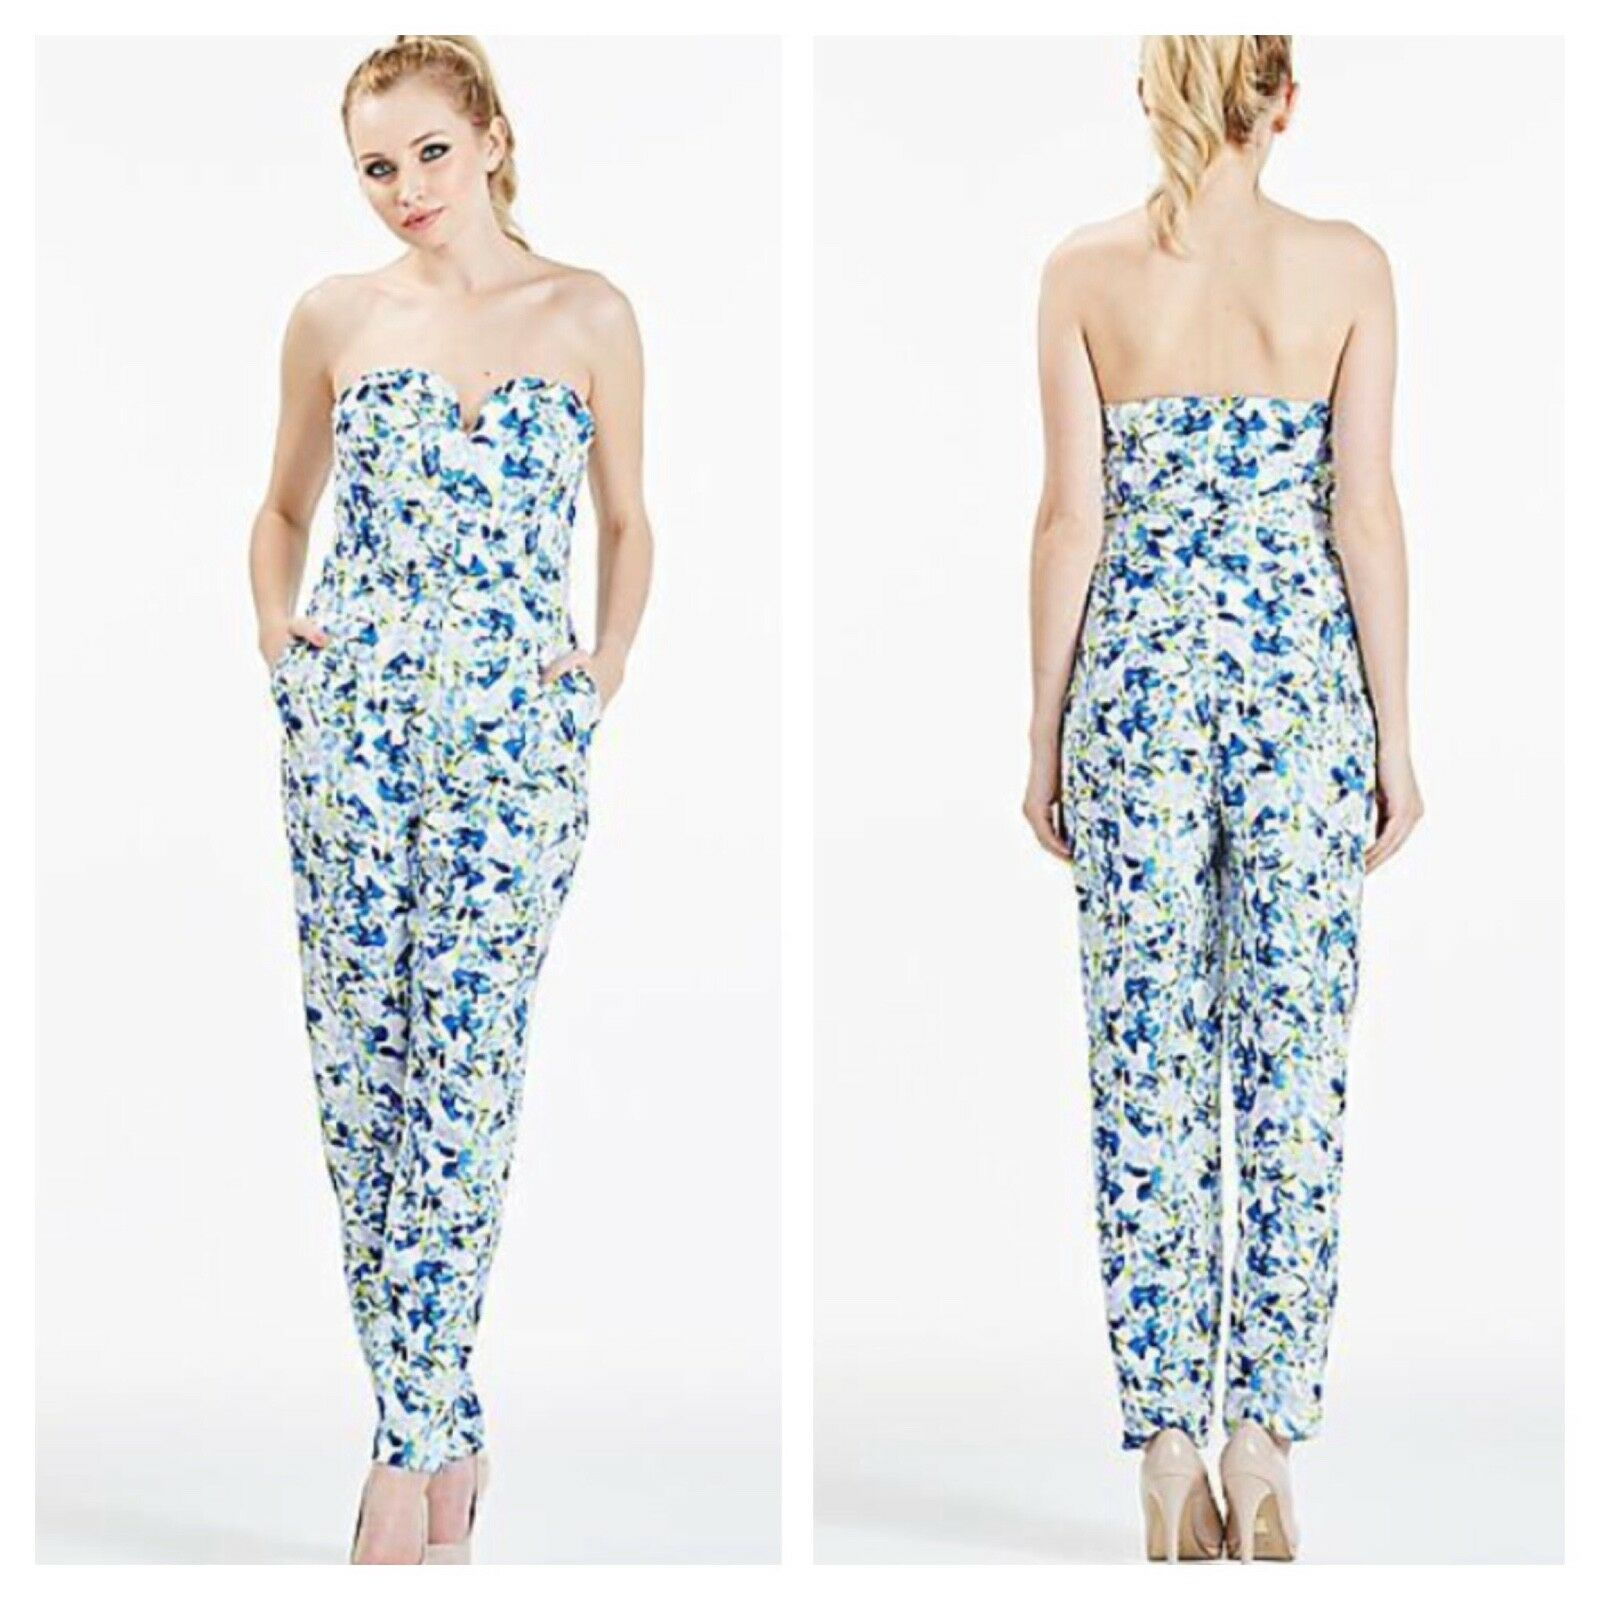 Darling Sz 16 bluee Floral Strapless JUMPSUIT Wedding Party Occasion Evening